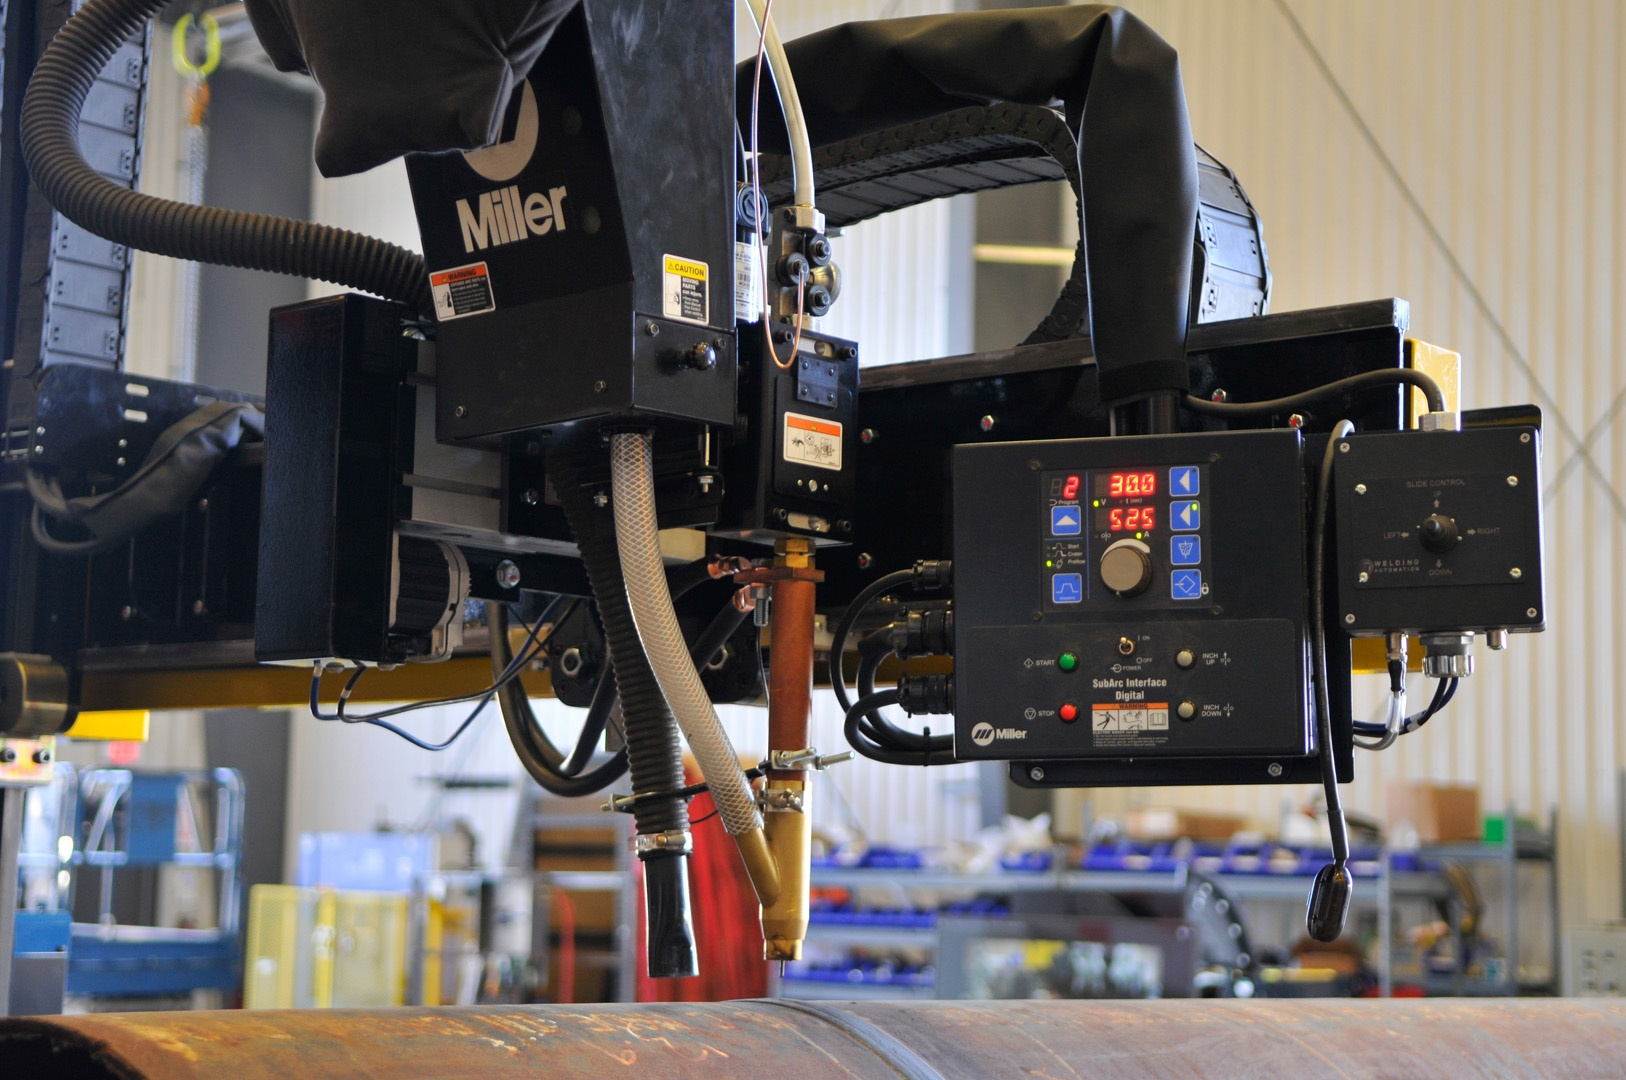 miller boom mounted controls for C&B manipulator.